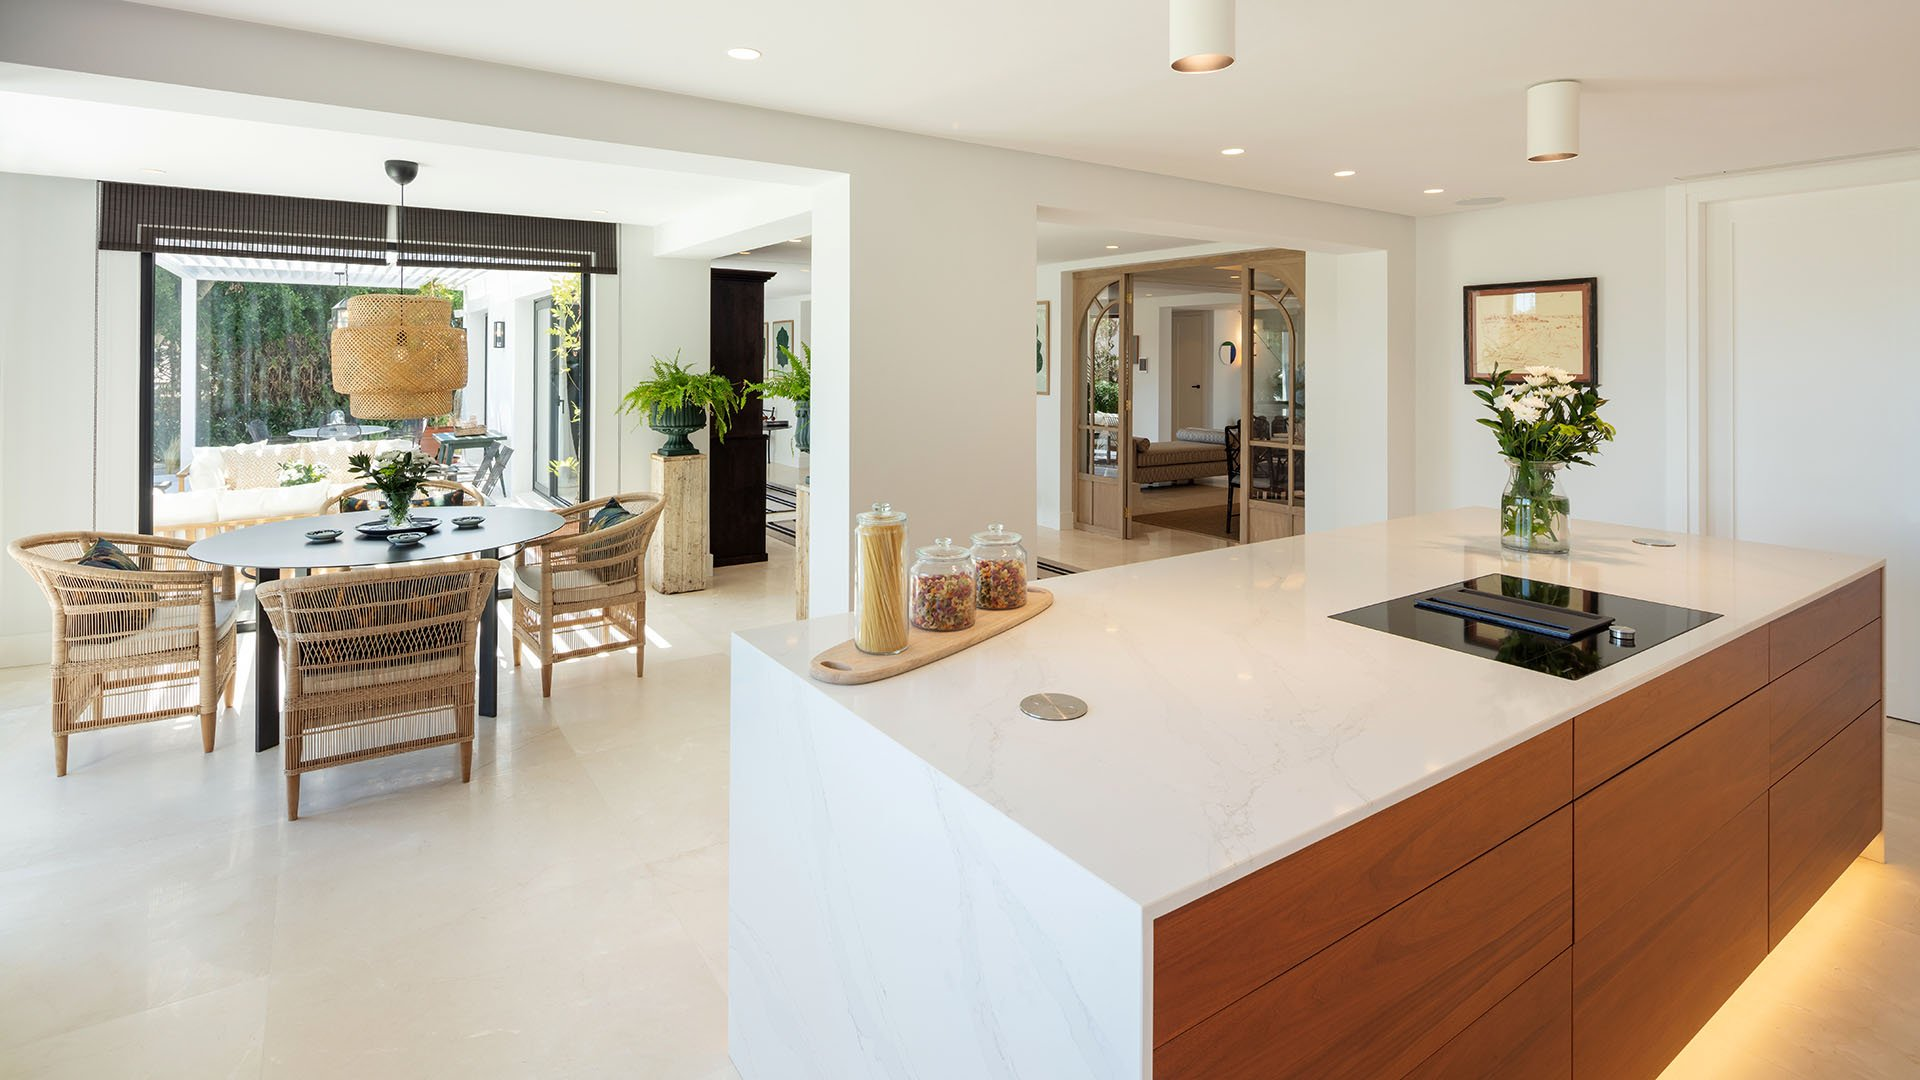 Aloha 144: Exquisite renovated villa surrounded by golf